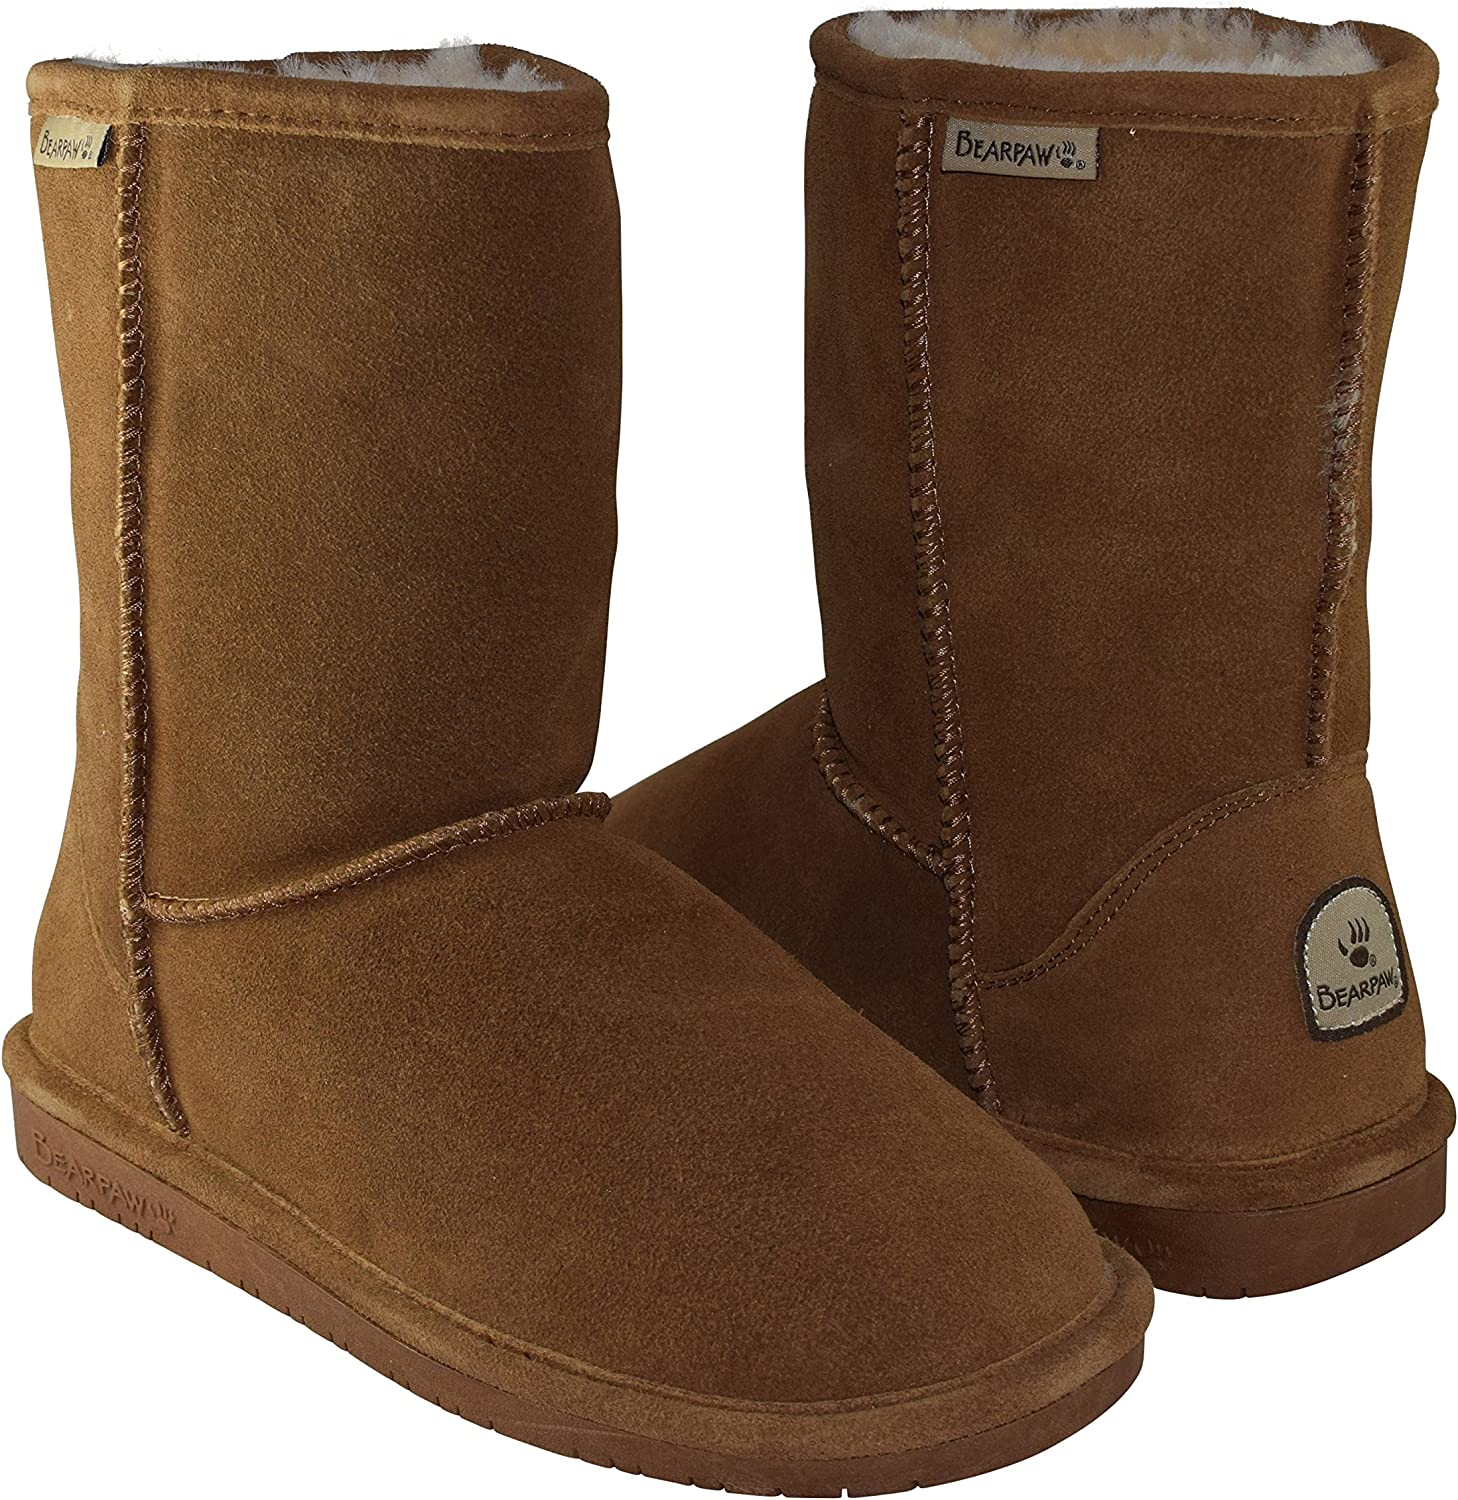 BEARPAW Max 61% OFF Limited time trial price Women's Emma Short Shearling 608-W Hickory Boots Chestn